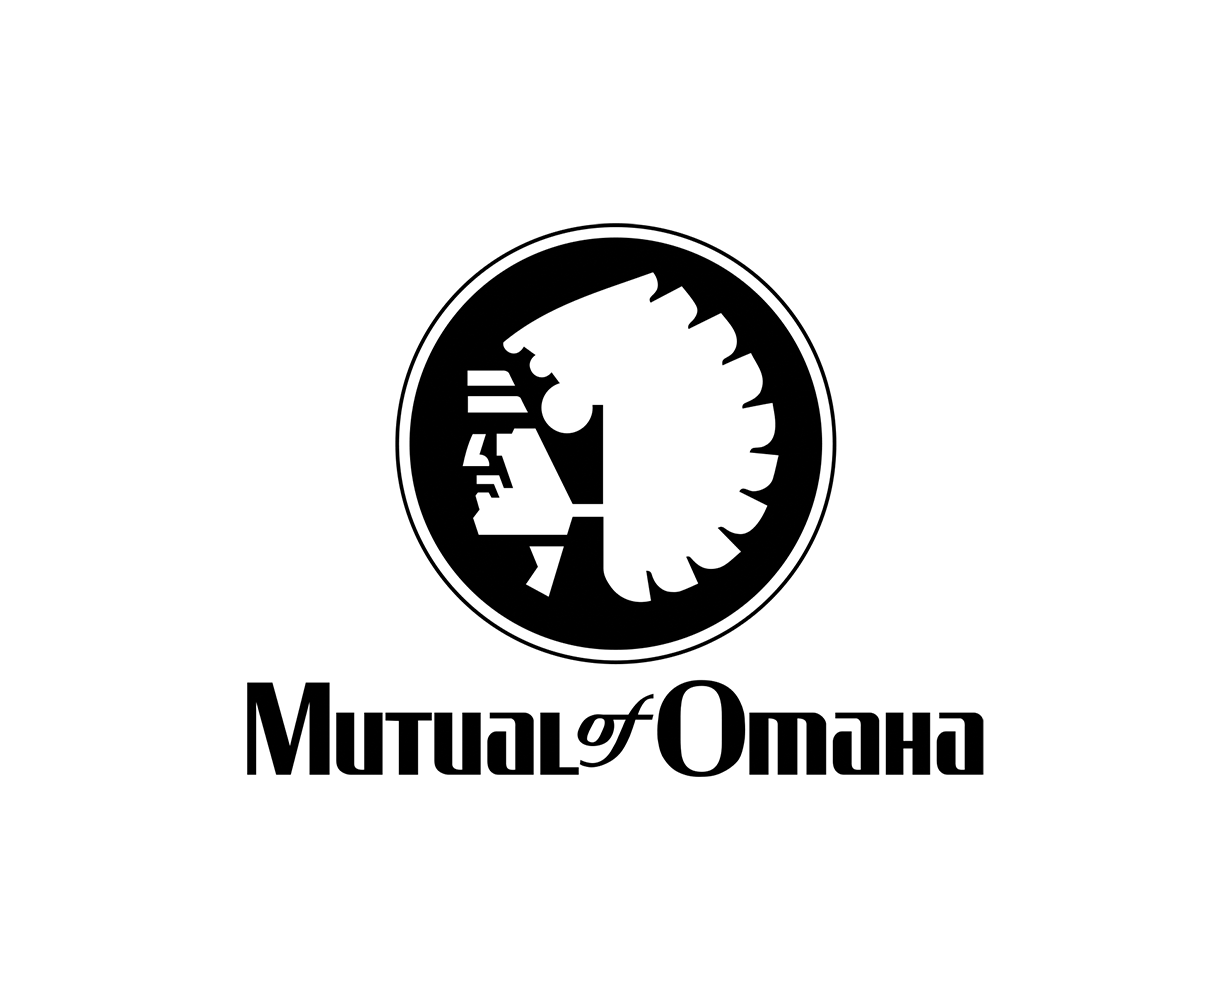 Products - Mutual of Omaha